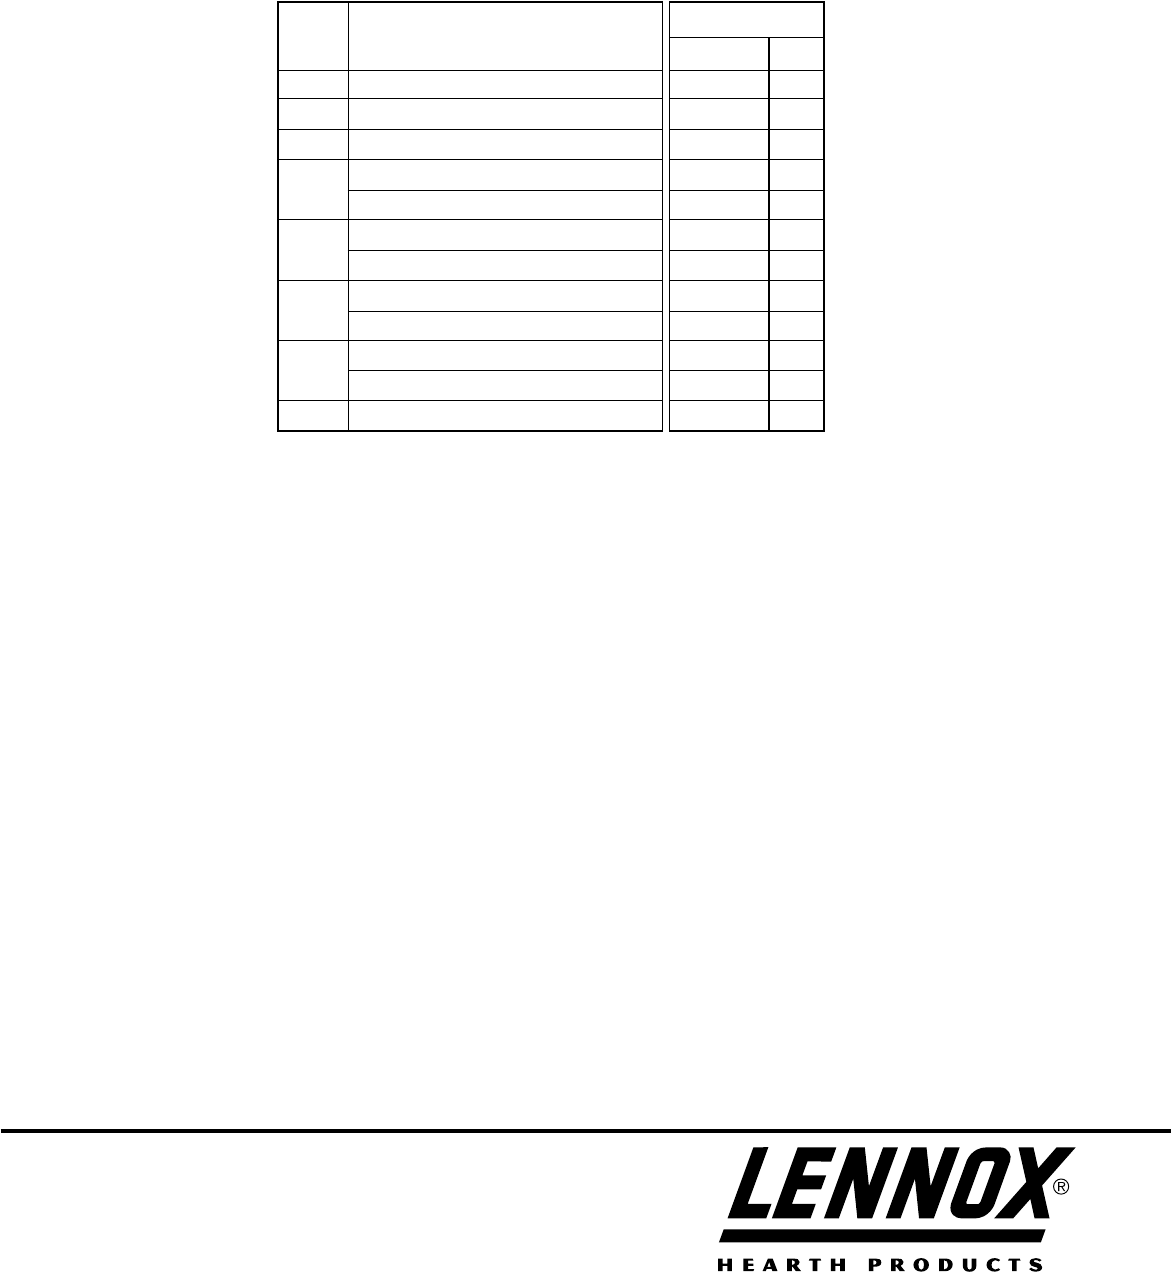 Page 8 of Lennox Hearth Indoor Fireplace EST 48 User Guide